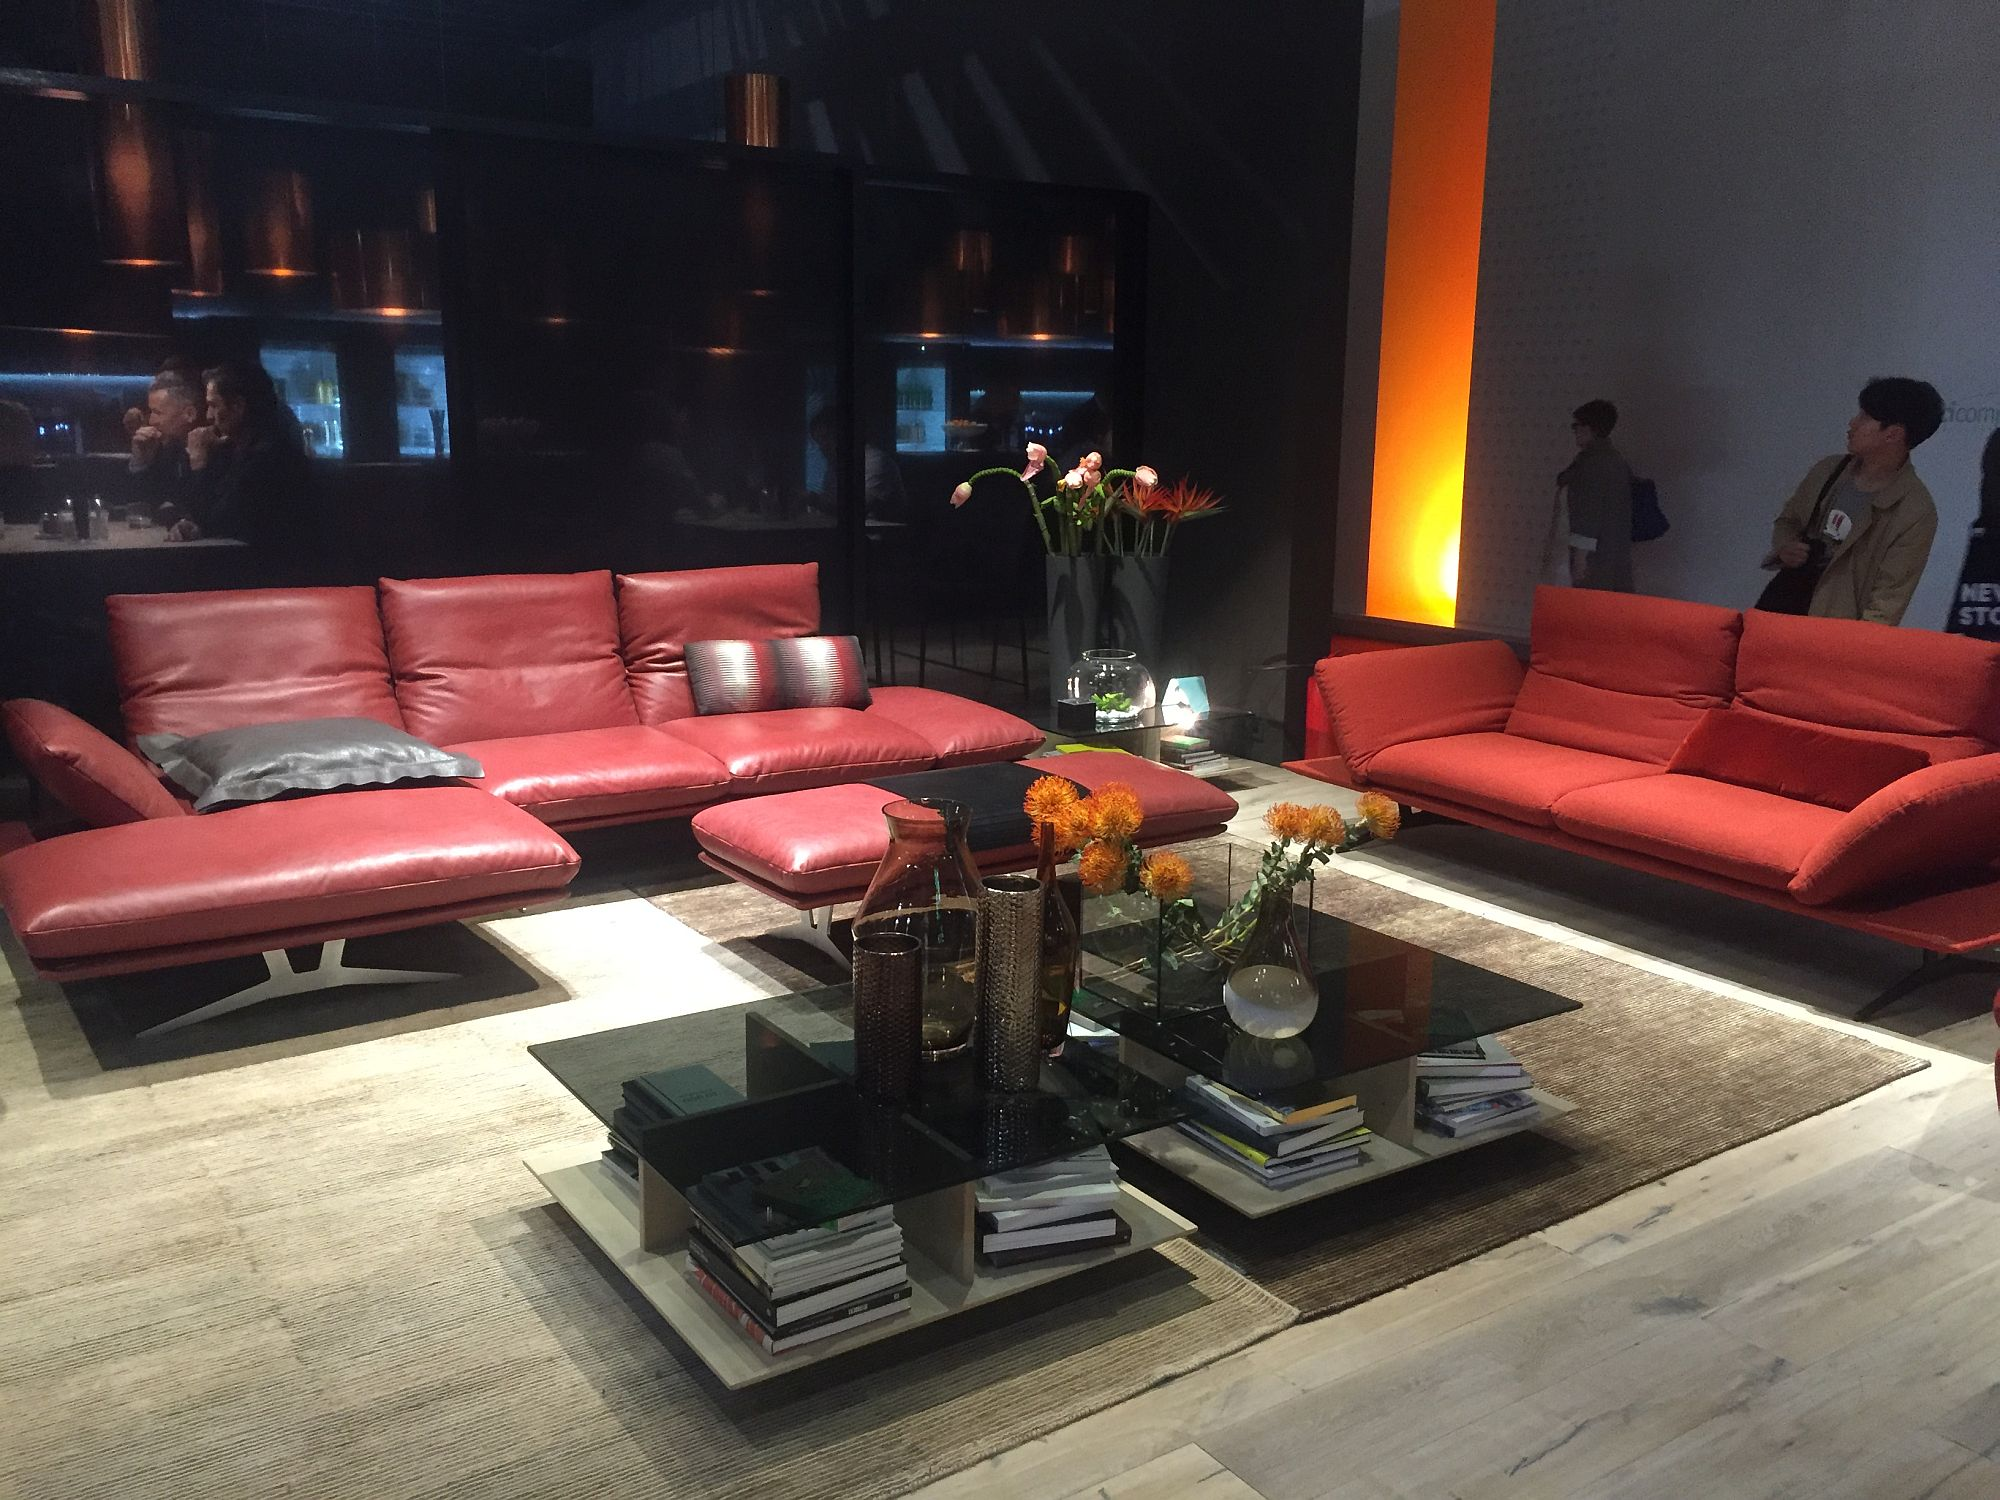 Exquisite Sofas In Red Become Instant Hits The Contemporary Living Room